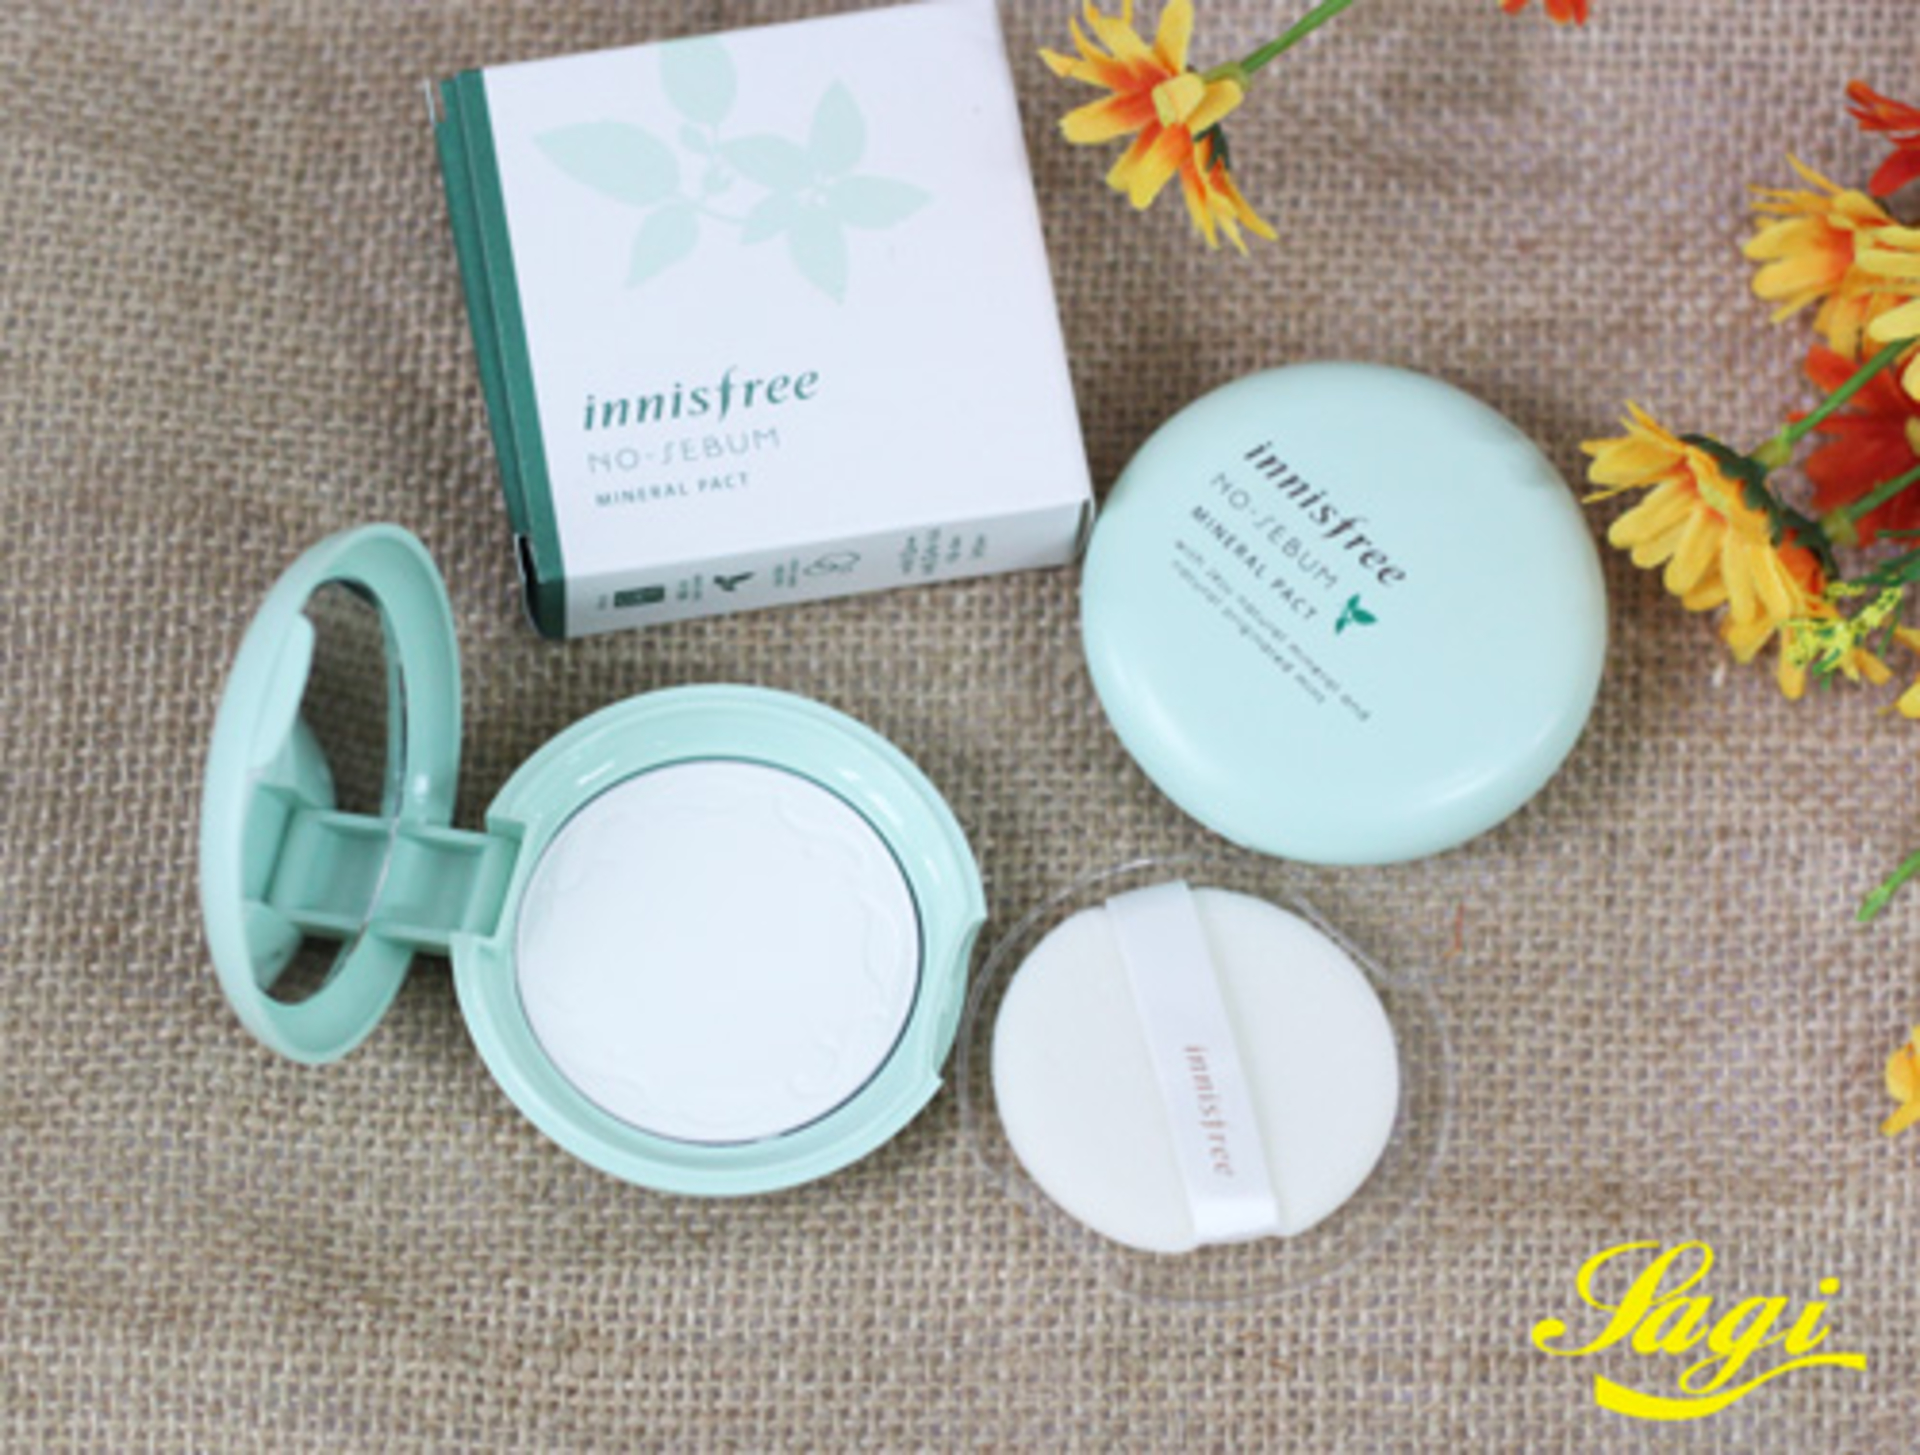 The Dramatic Diva  - phan-innisfree-no-sebum-mineral-pact-1